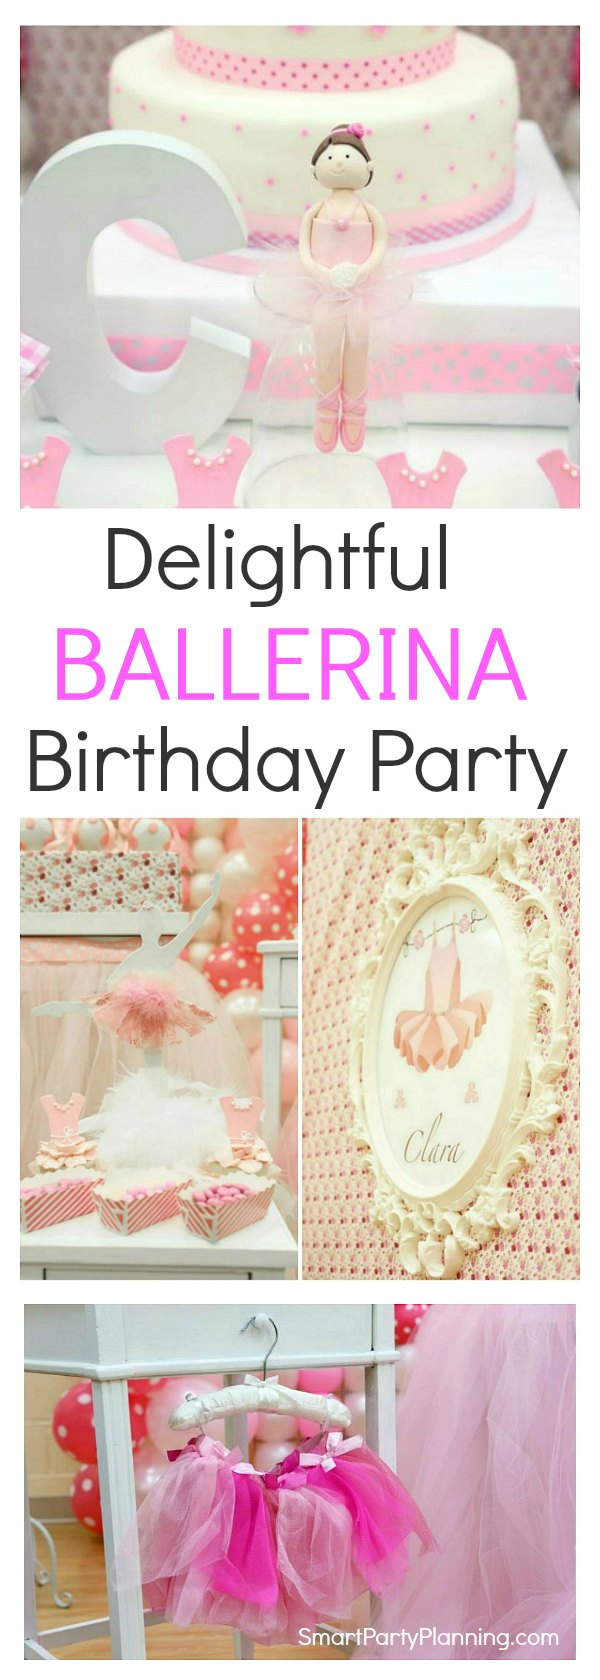 Gorgeous ballerina birthday party that would be any little girls dream. Showcasing stunning ballerina decorations, and beautifully styled food, this pink dreamy party will be sure to delight.